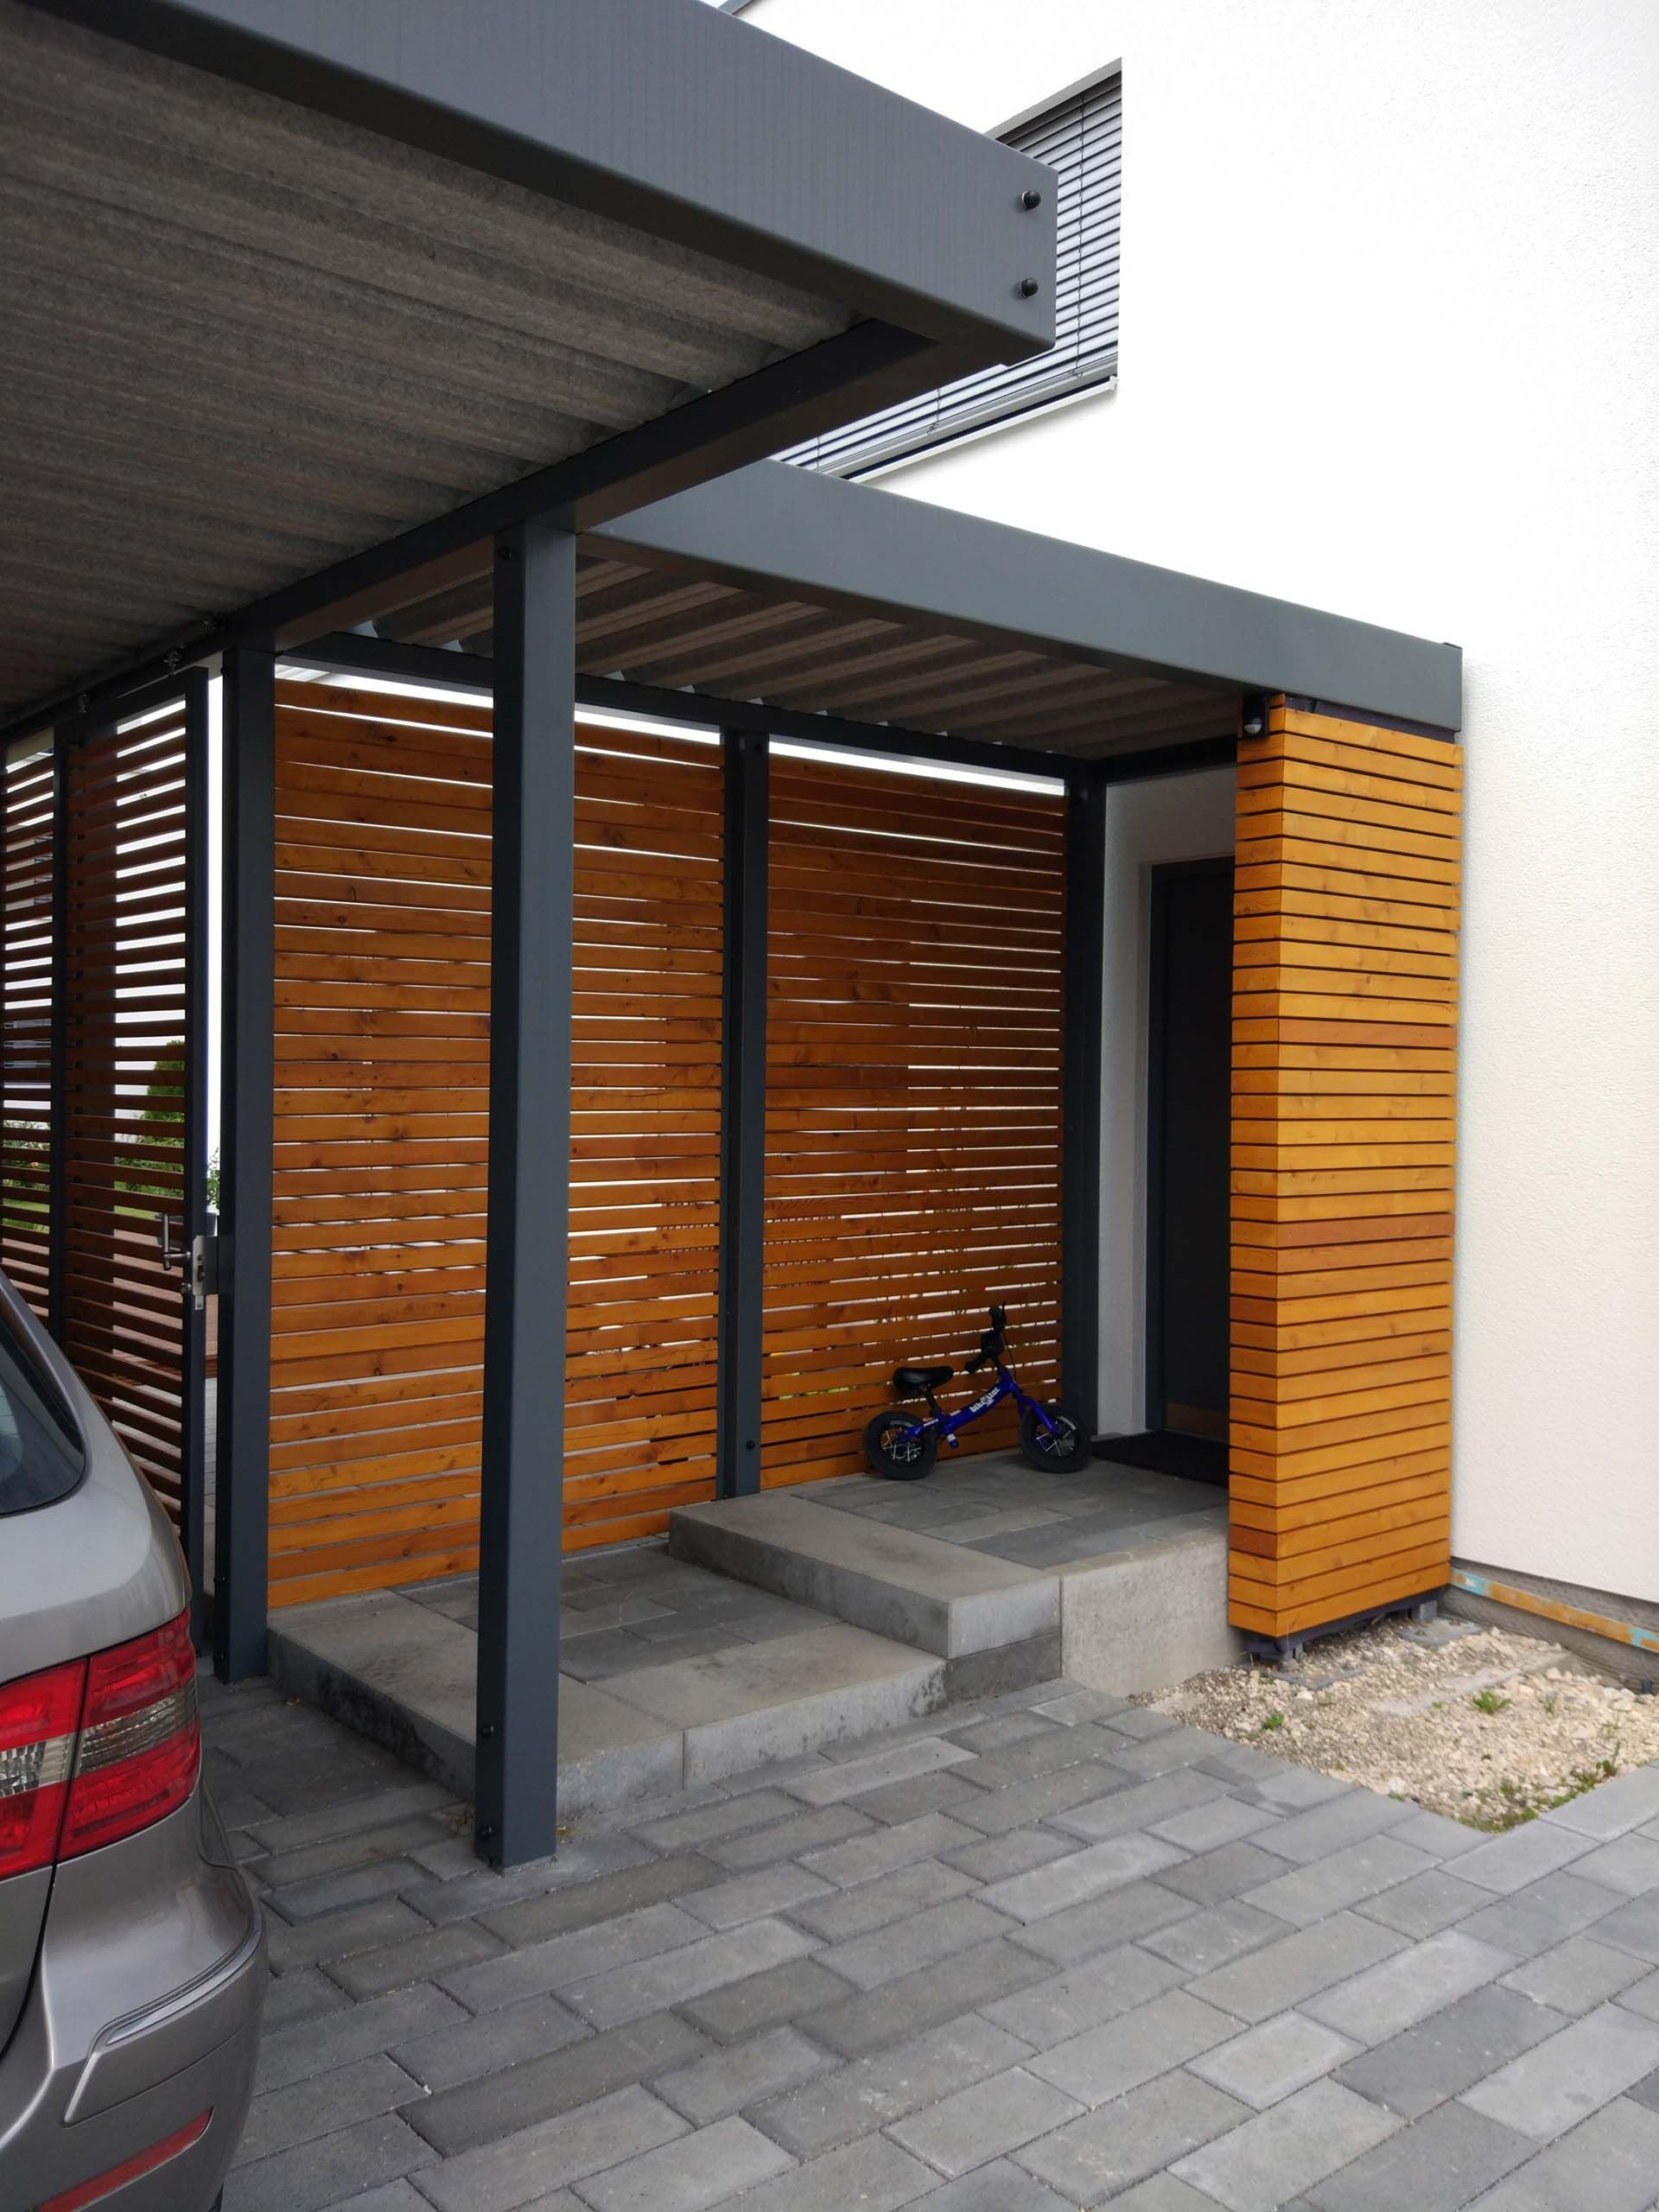 Design metall carport mit vordach aus holz stahl paris for Carport holz metall